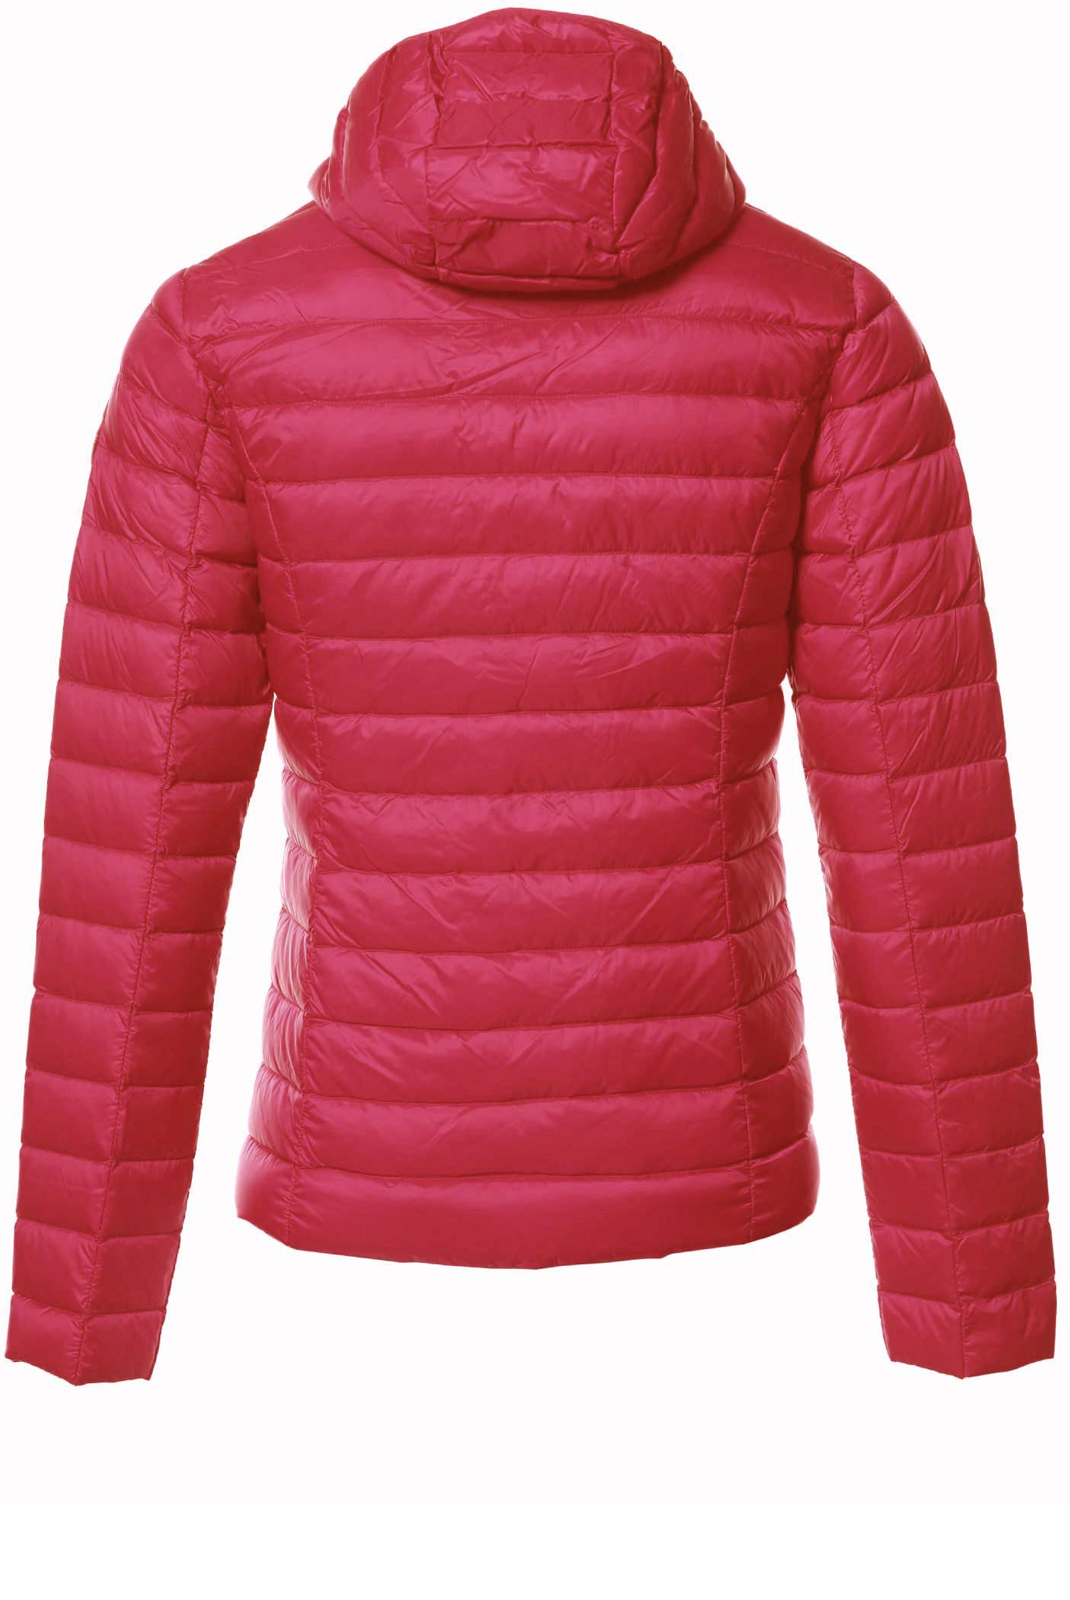 Blouson  Just over the top CLOE 417 GRENADINE